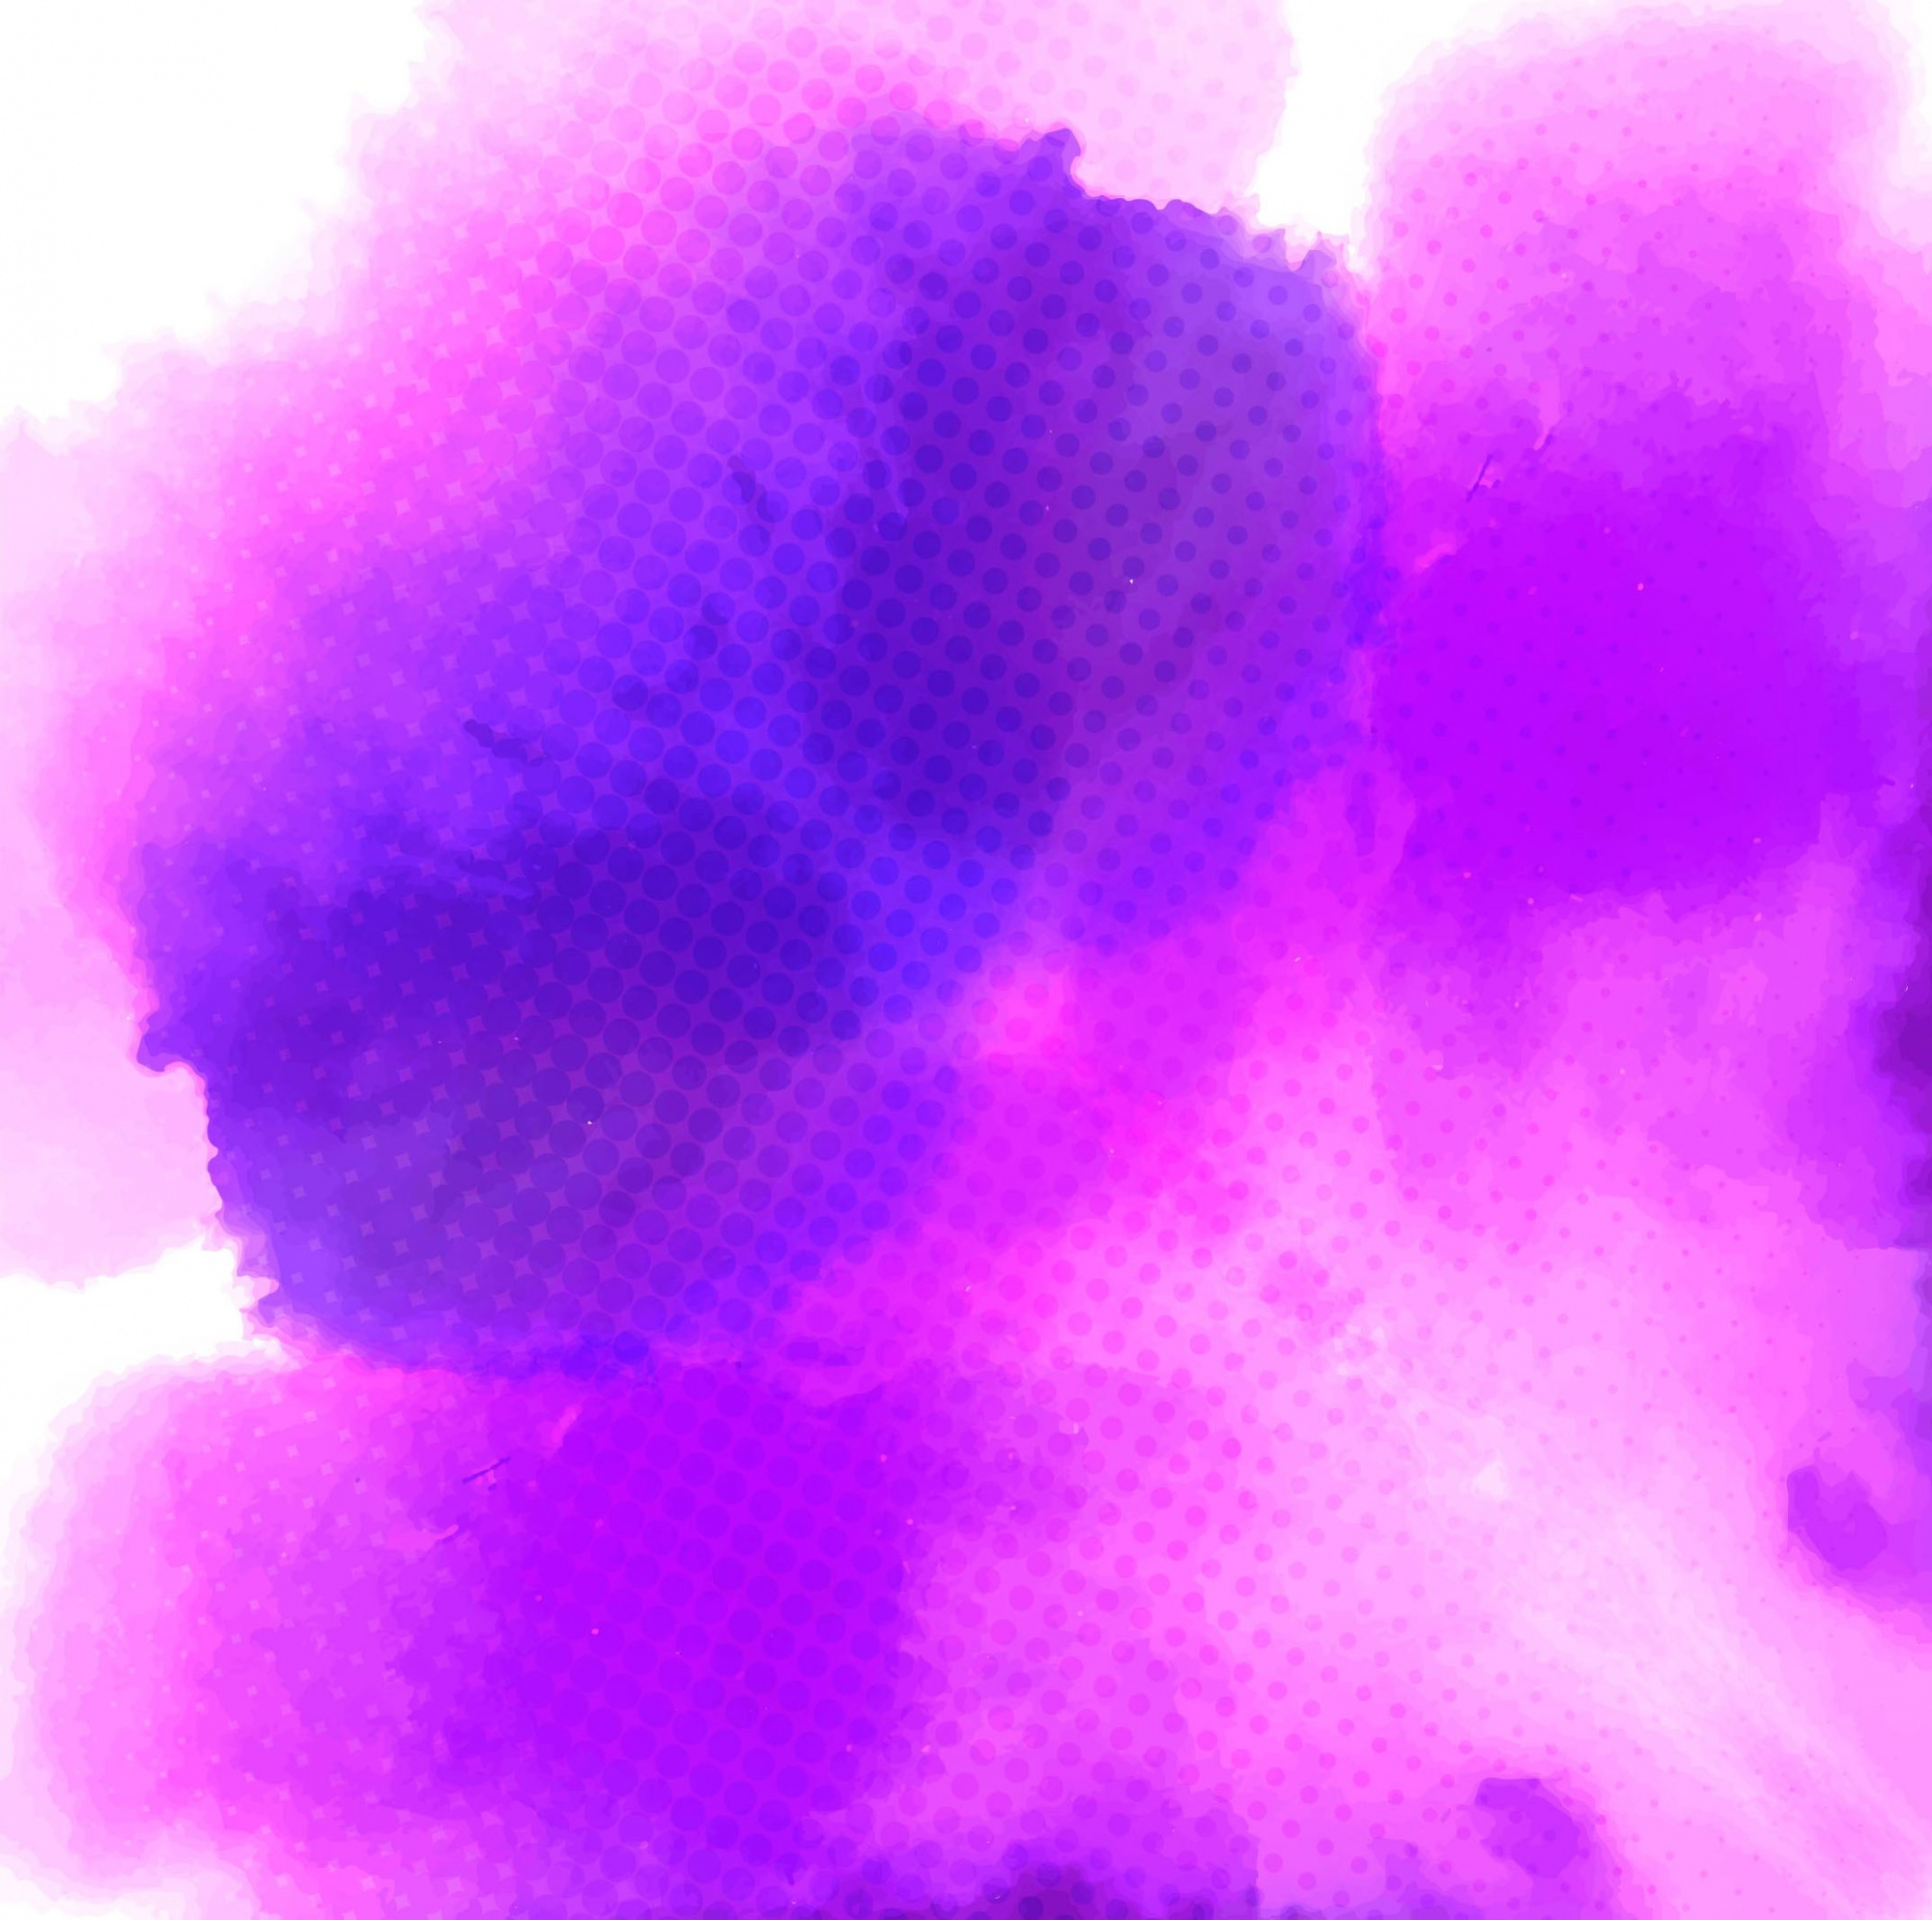 Watercolor texture, purple color